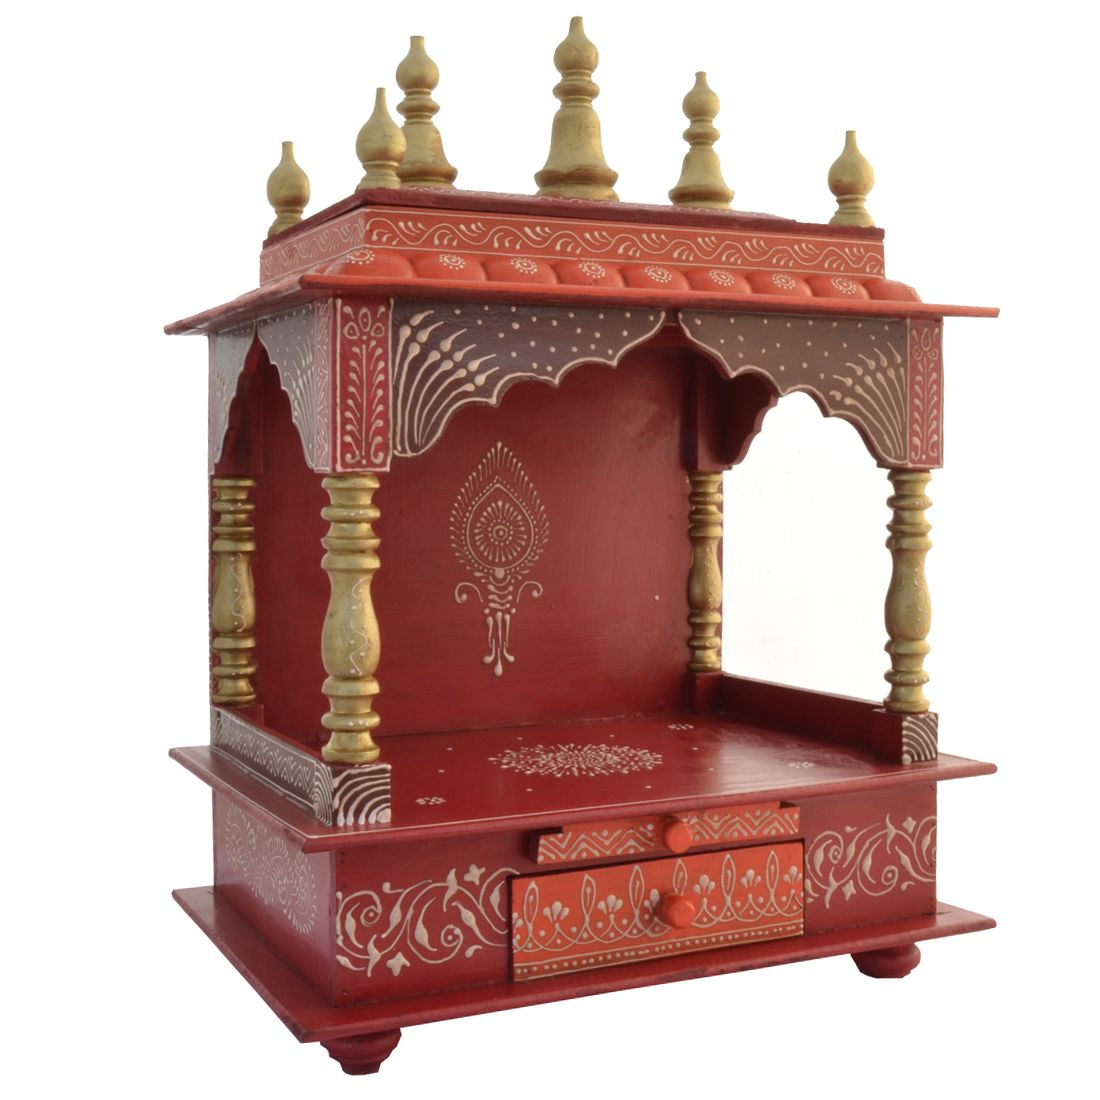 Jodhpur Handicrafts Red Wood Hanging Mandir Buy Jodhpur Handicrafts Red Wood Hanging Mandir At